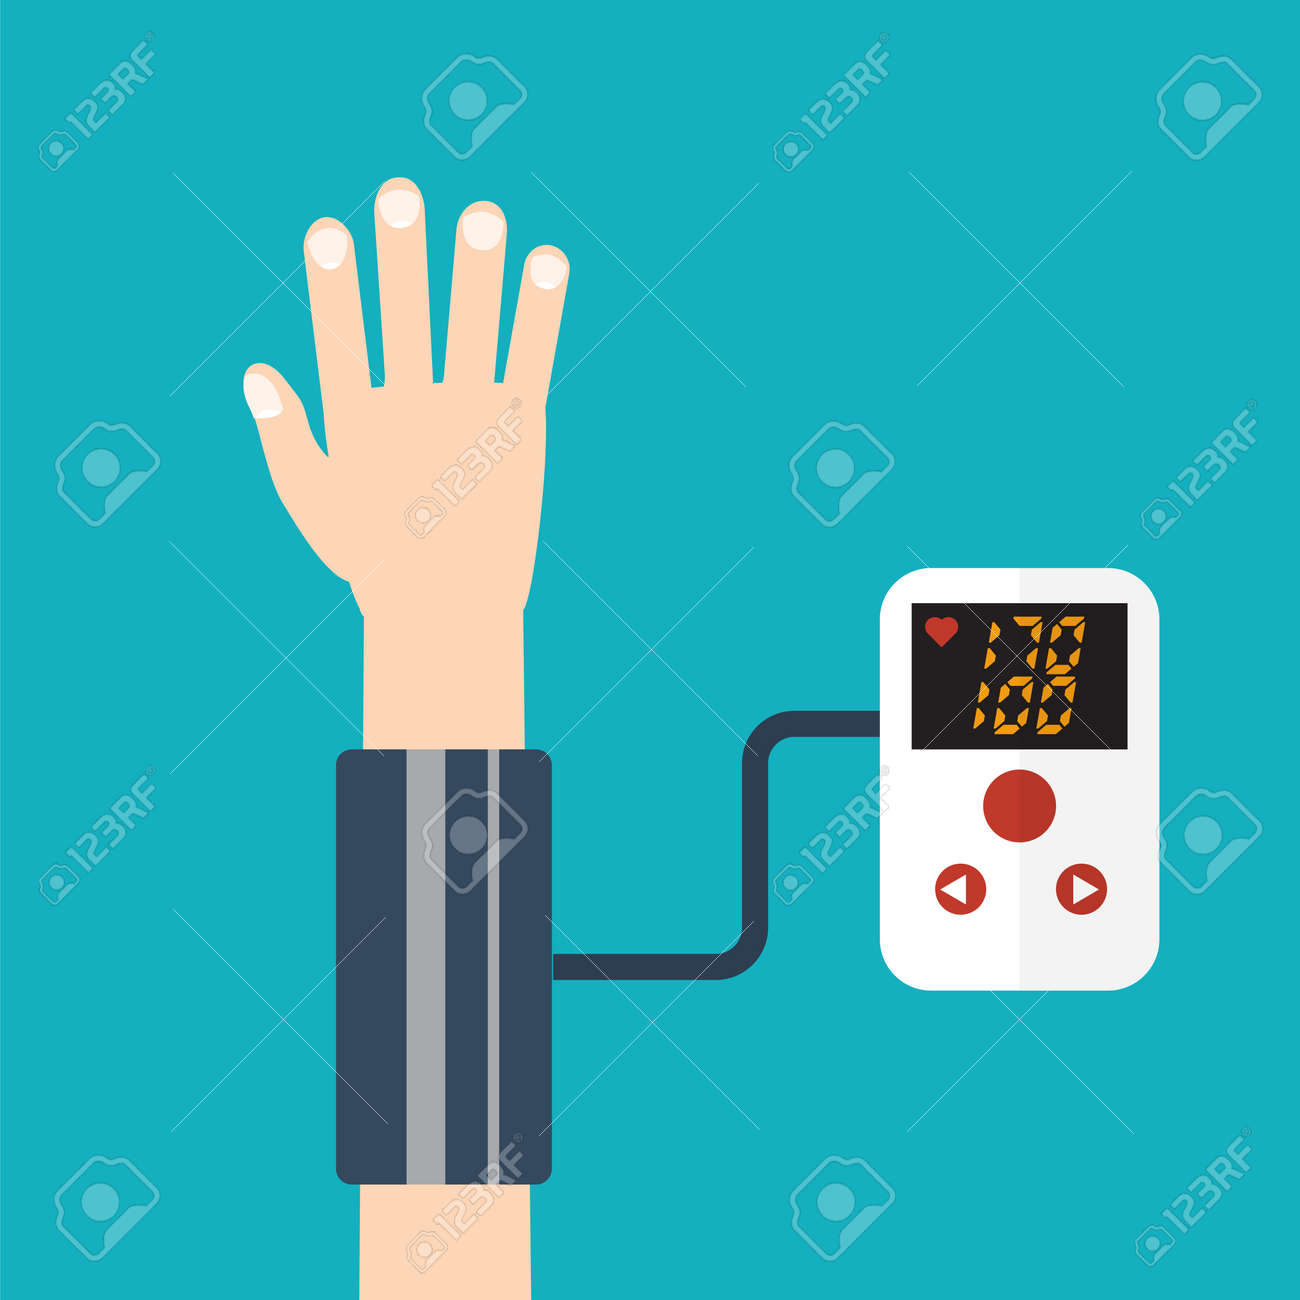 High blood pressure concept vector - 50177191